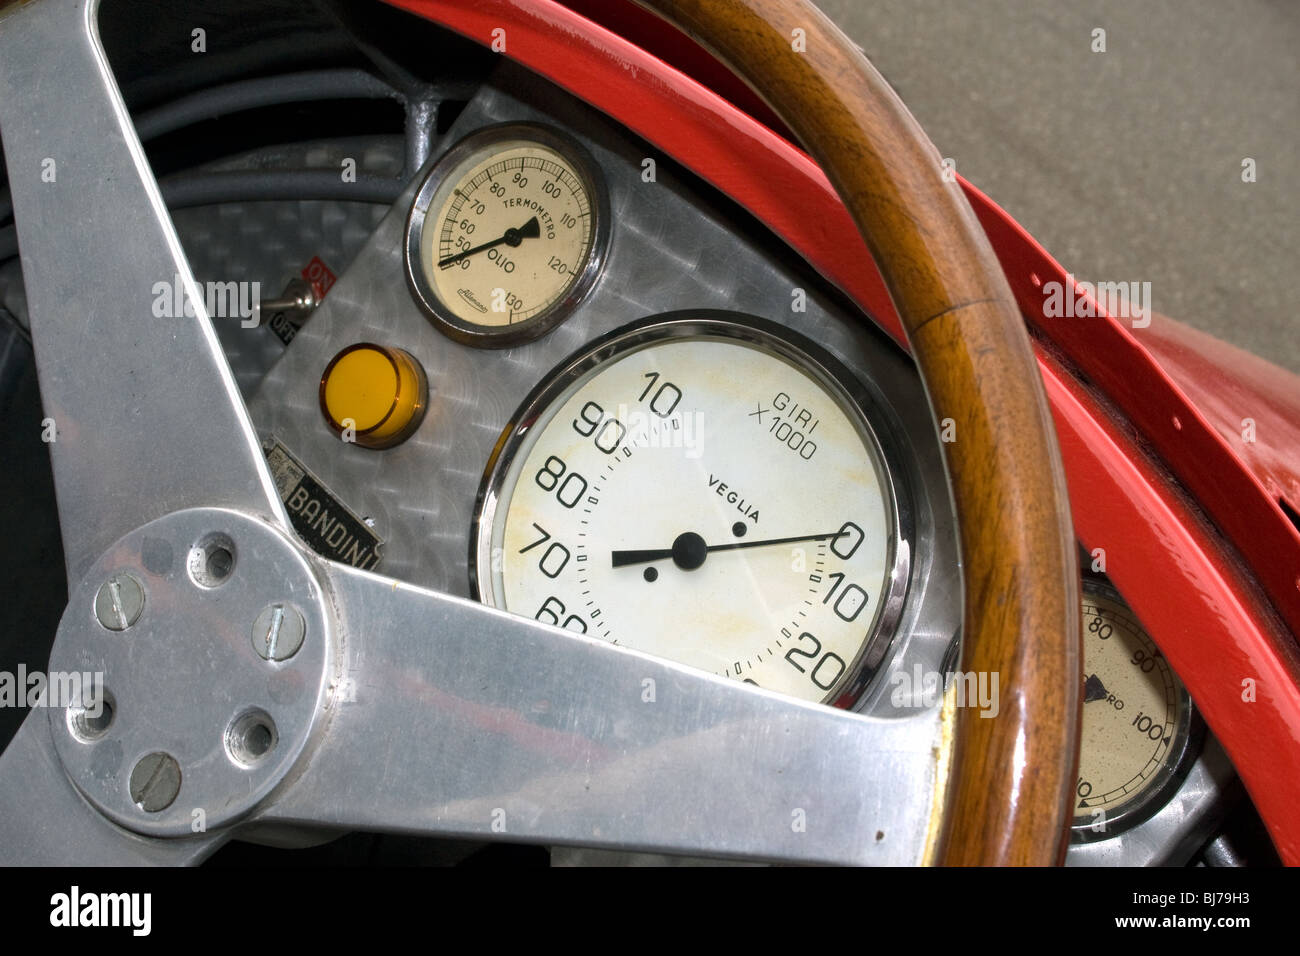 Cockpit of a racing acr at Brands Hatch in Kent. - Stock Image